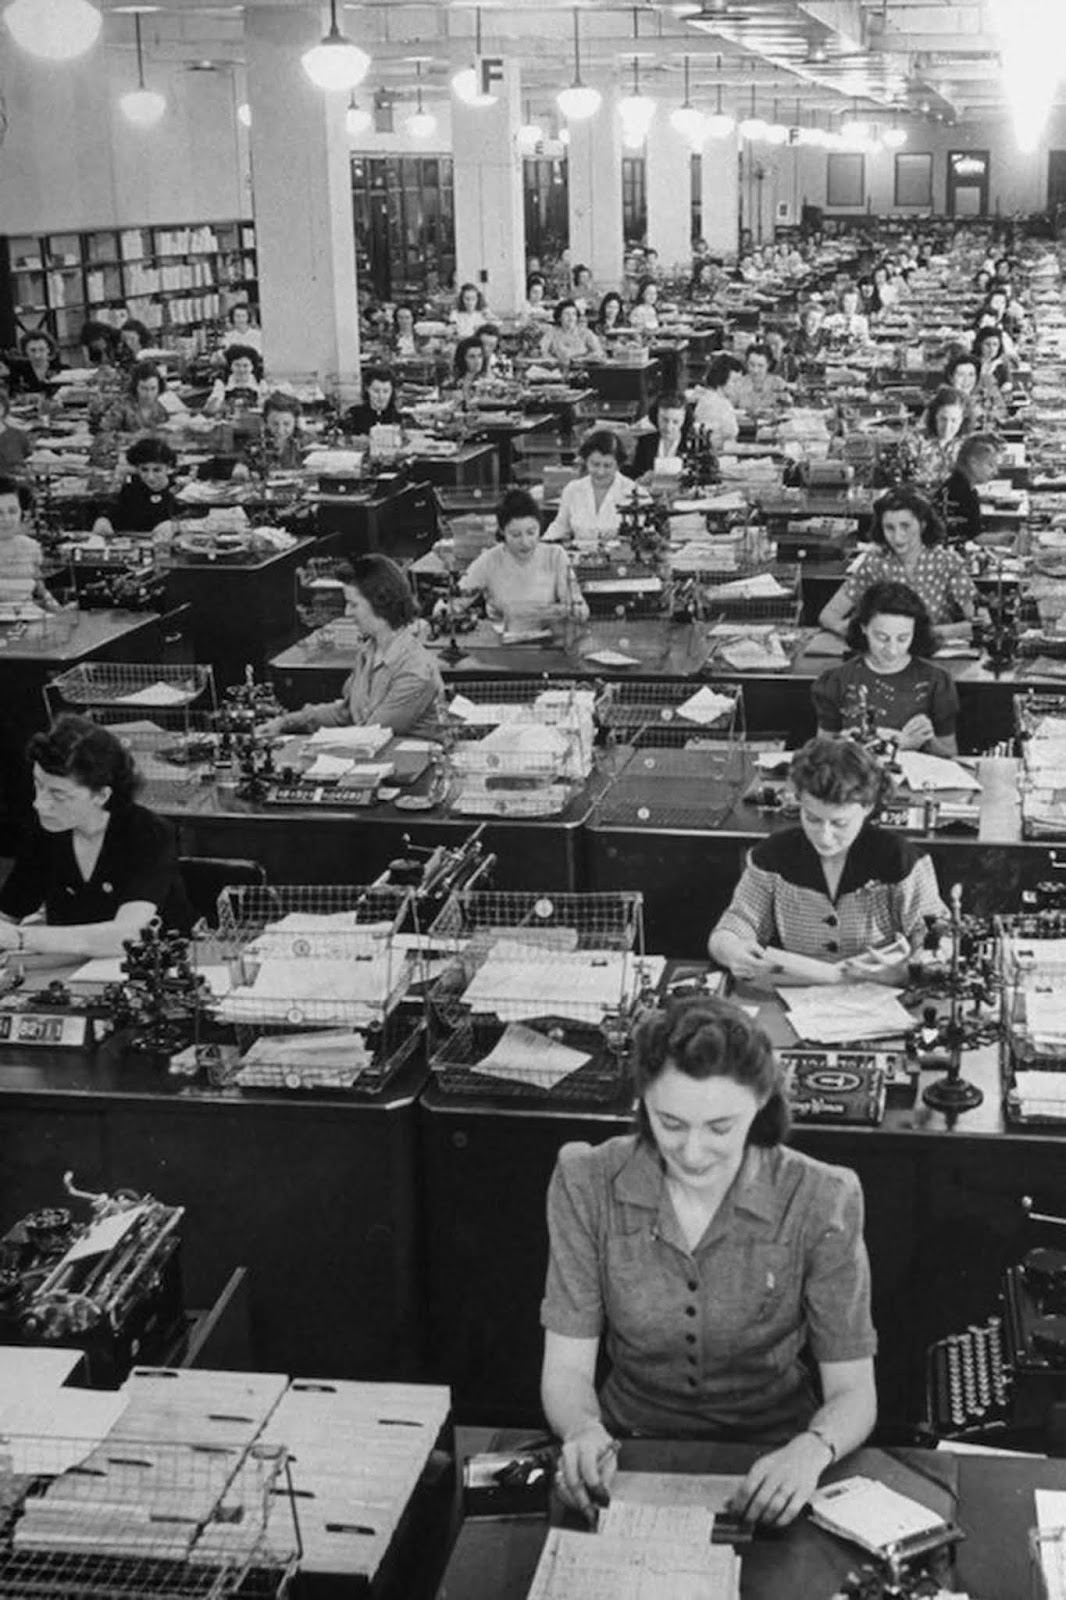 325 American women working to fill mail orders in the office of the Book of the Month Club. The women wear a wide variety of blouses and dresses, including decorative patterns and polka dots, though most have V-necks. Some wear brooches. They typically wear shoulder-length hair; some, as the woman at the front, use hair nets. 1942.